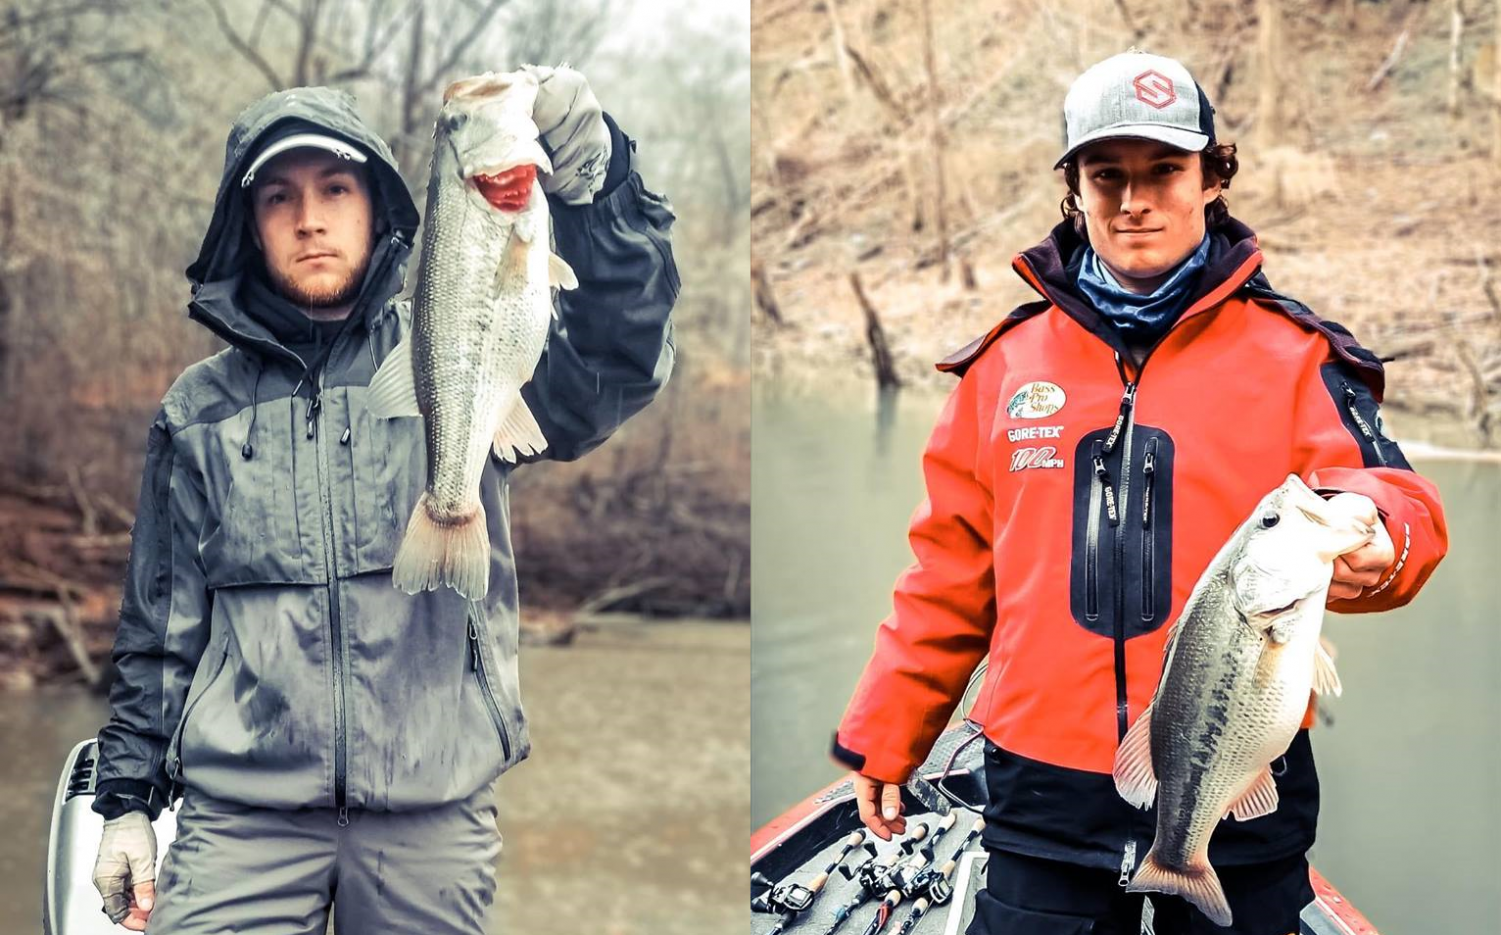 Colby Wolff (Left) and Gage Griffin (Right) Photo via https://www.facebook.com/UWLFishing/